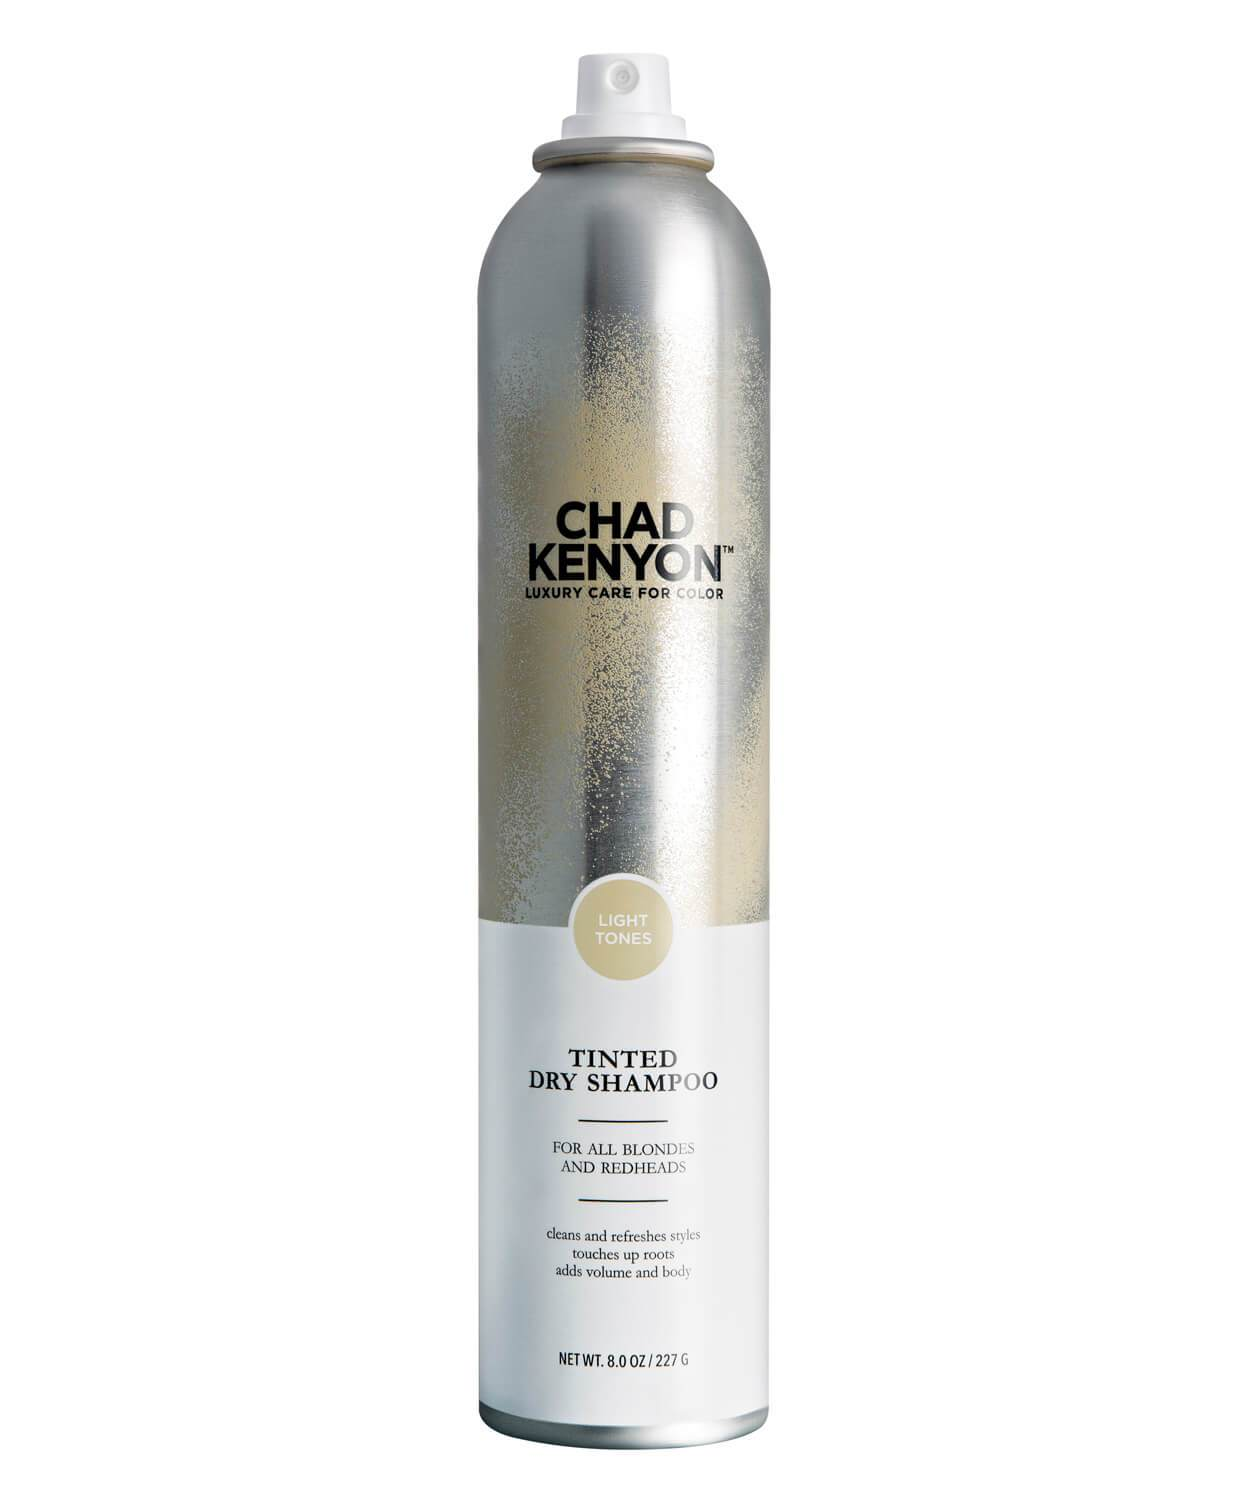 Tinted Dry Shampoo - Light Tones Shade